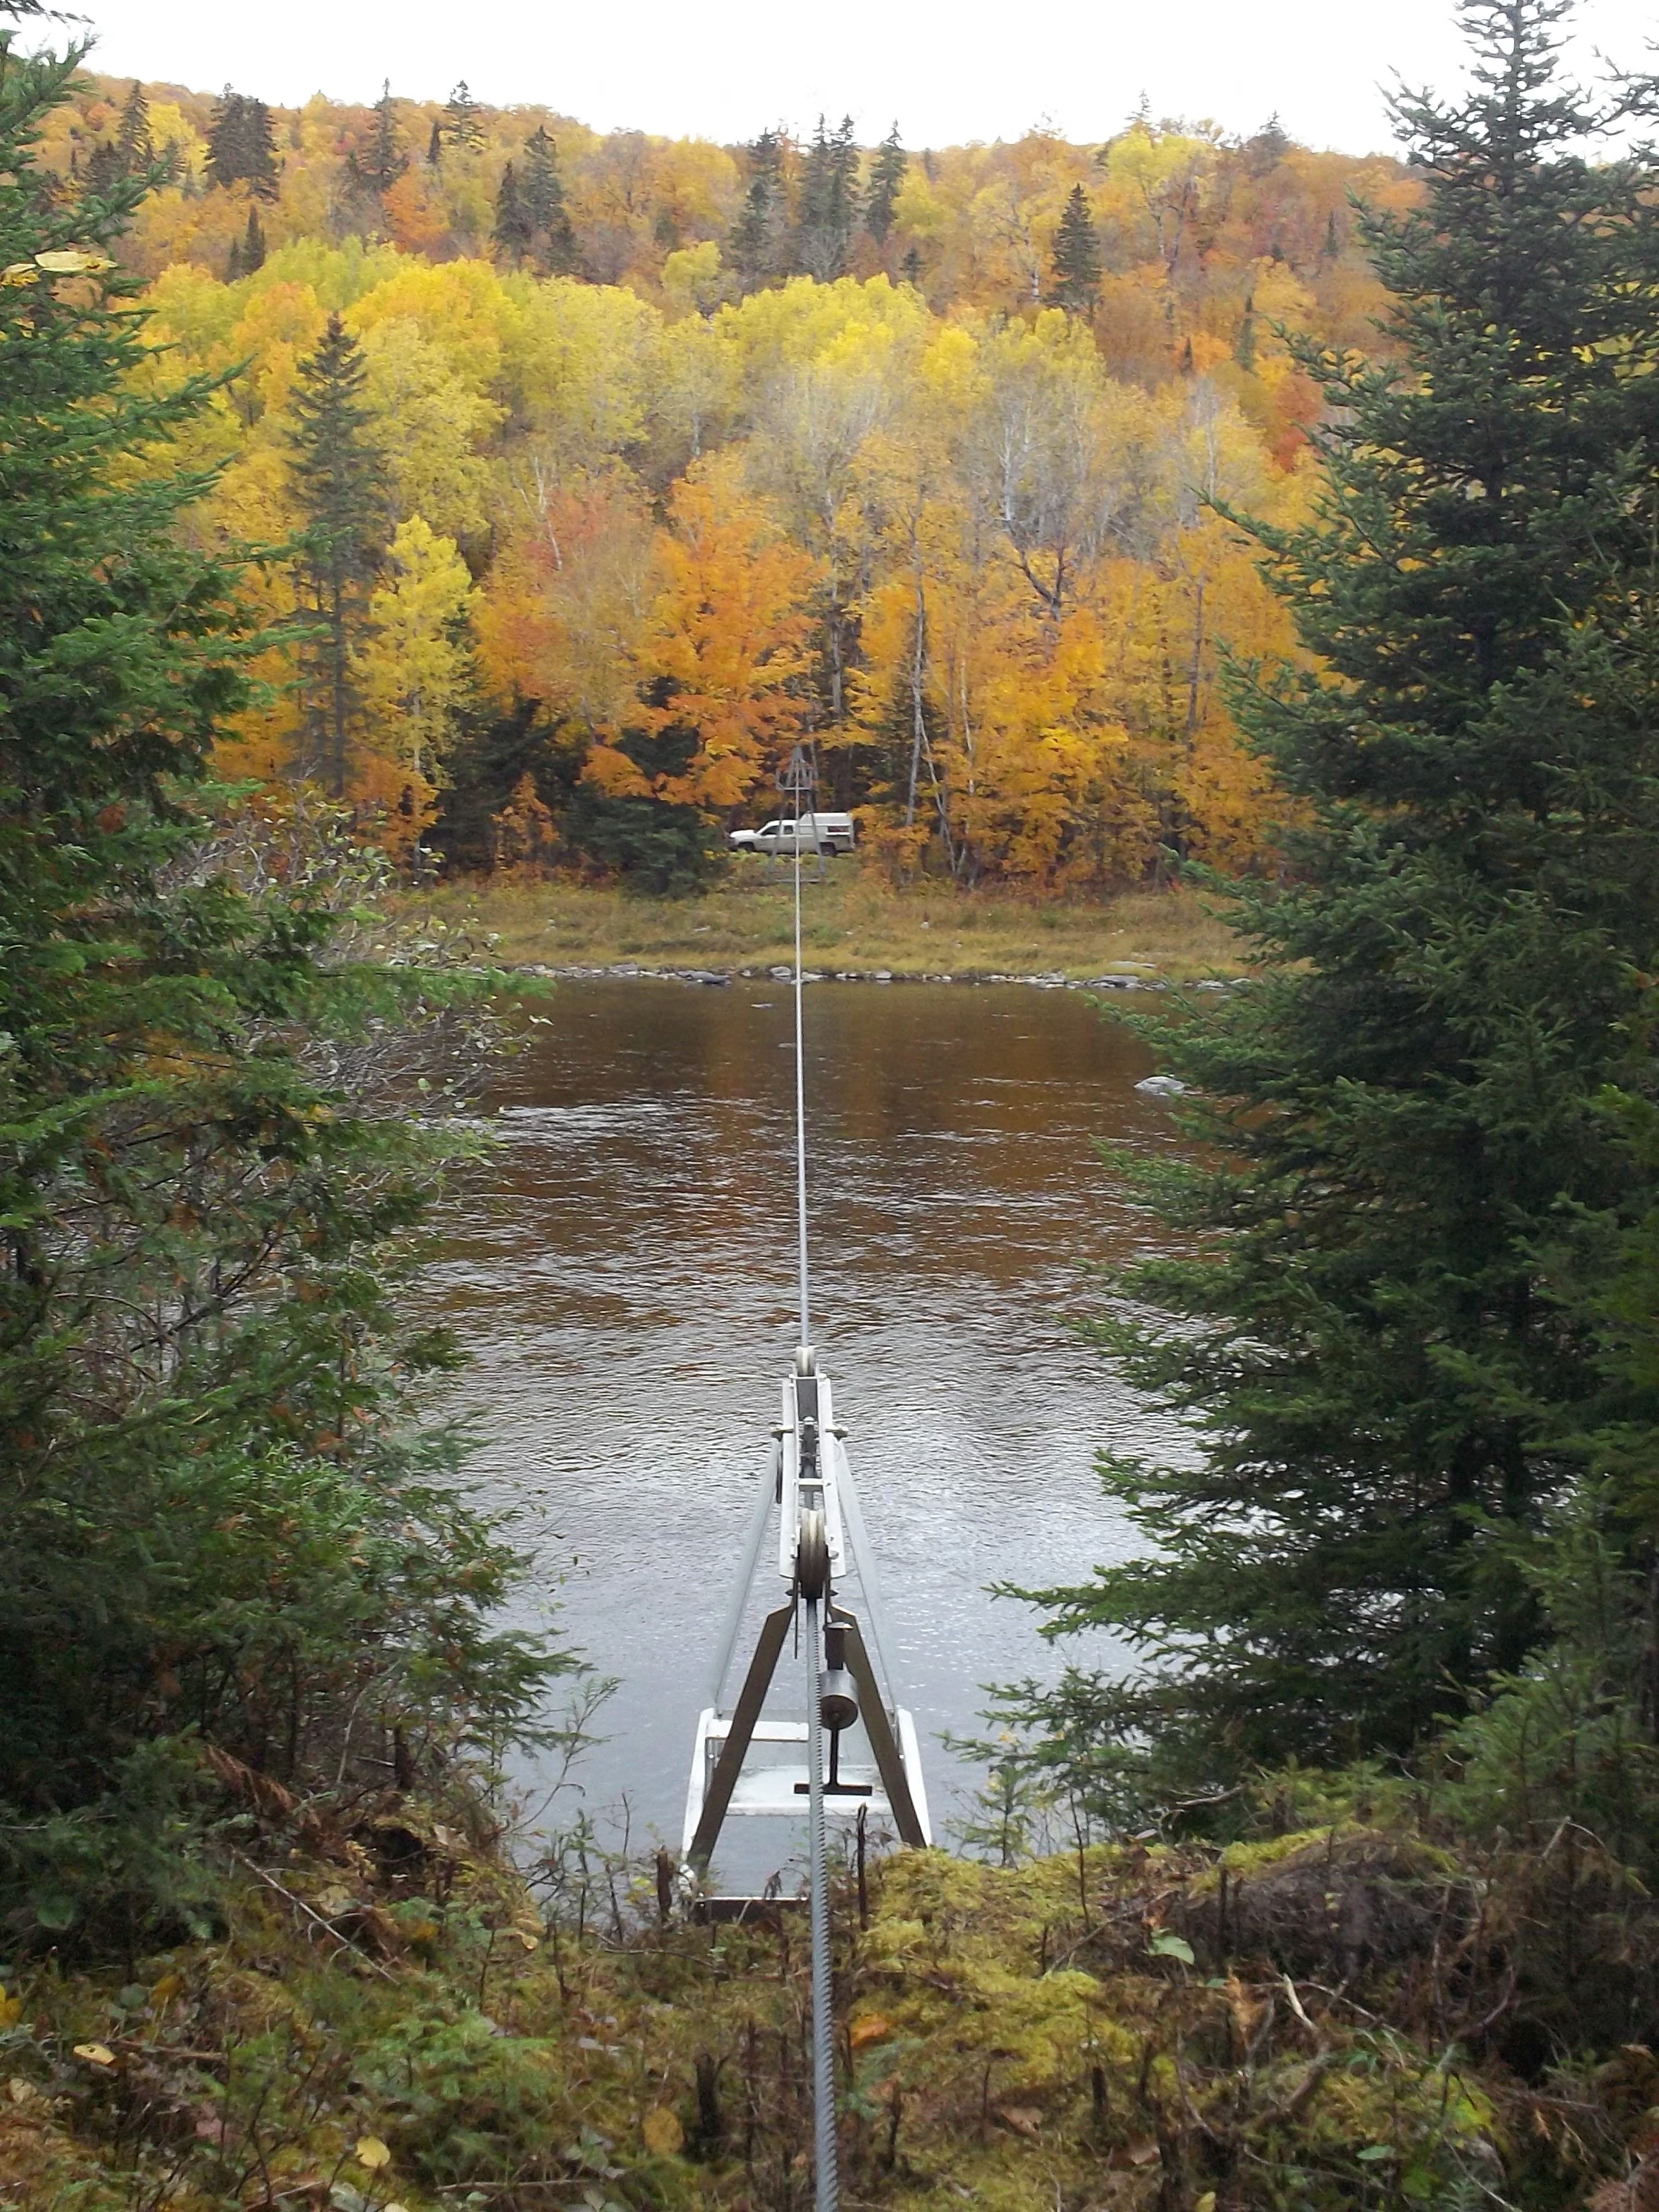 The manned cableway over the Allagash River.